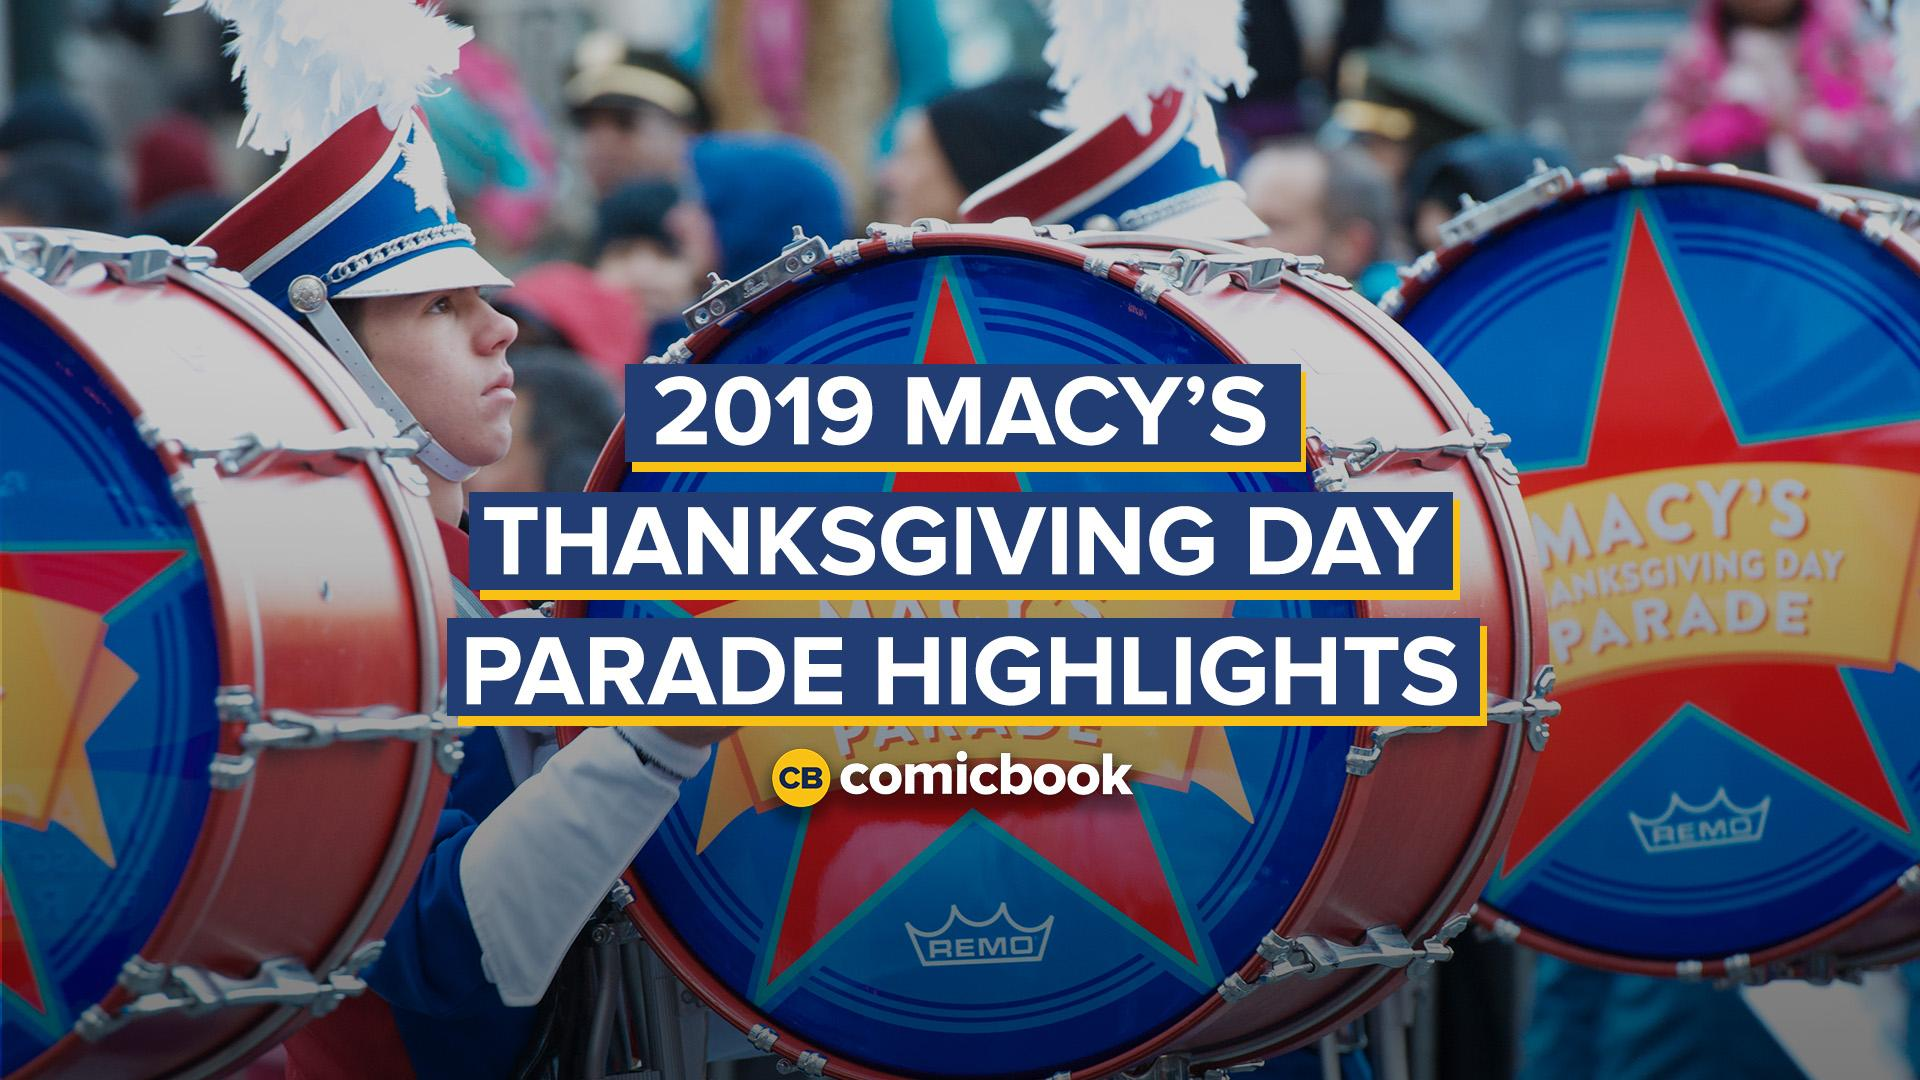 2019 Macy's Thanksgiving Day Parade Highlights screen capture